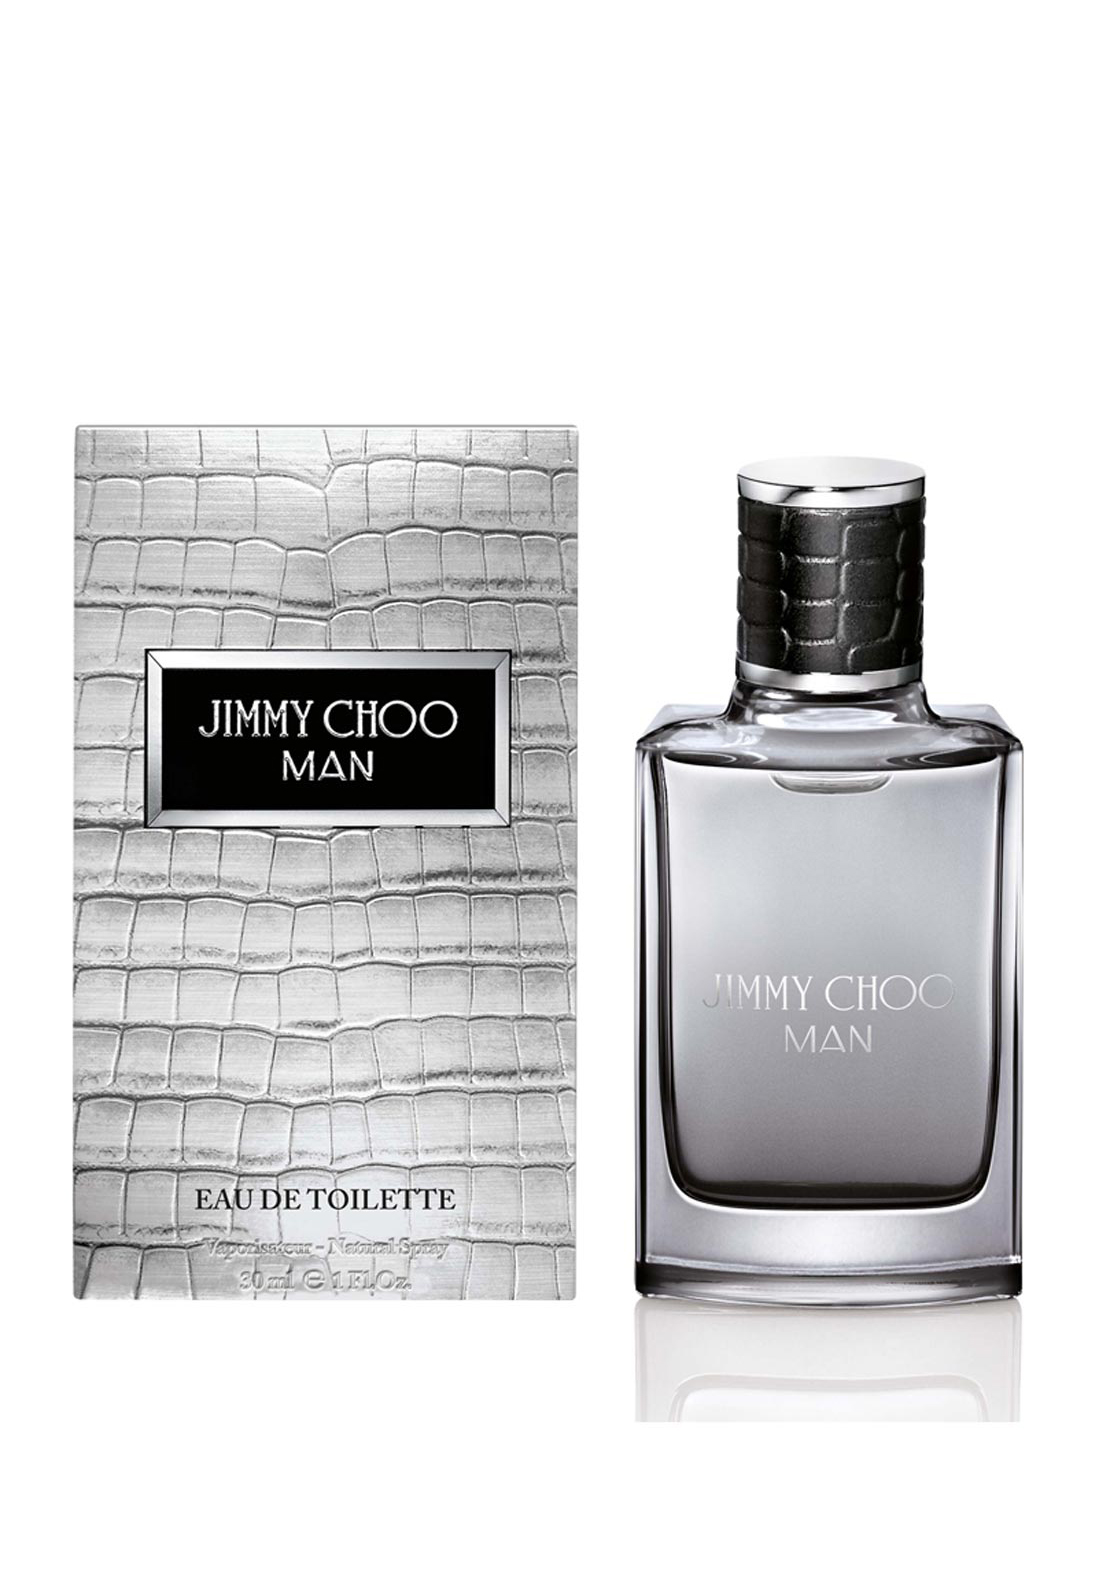 Jimmy Choo Man Eau De Toilette, 30ml